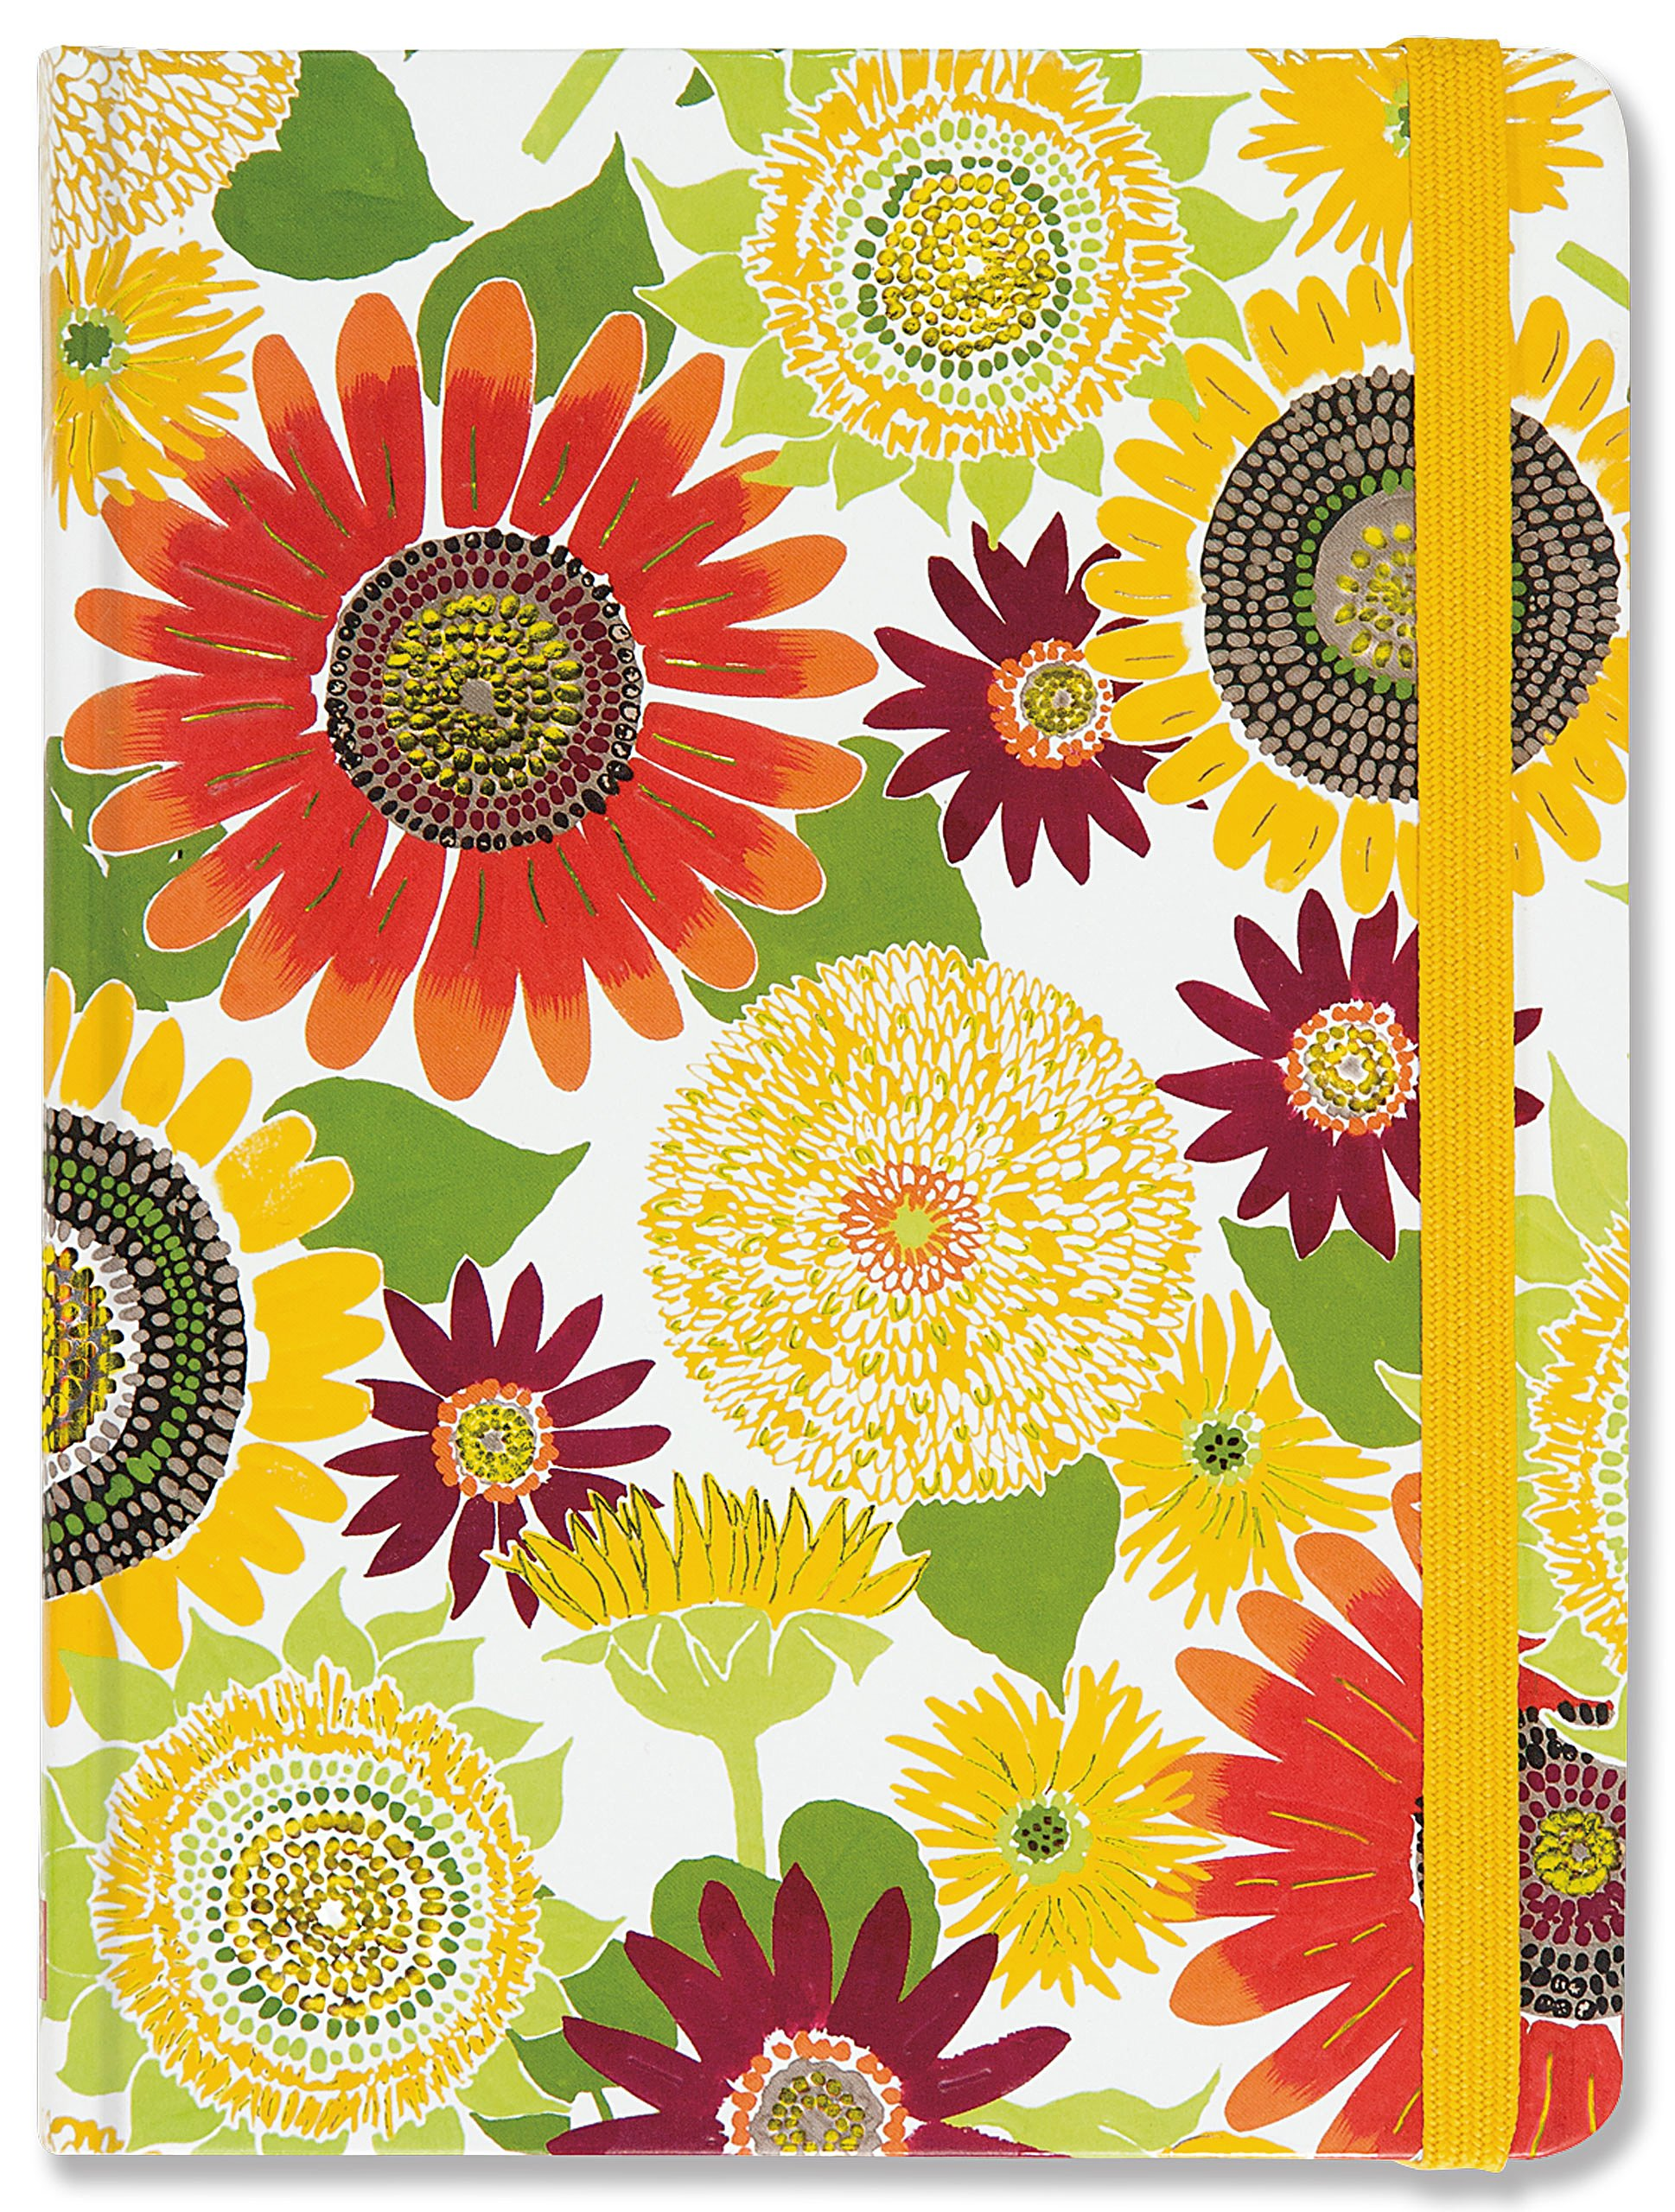 Sunflower Garden Journal Diary Notebook product image